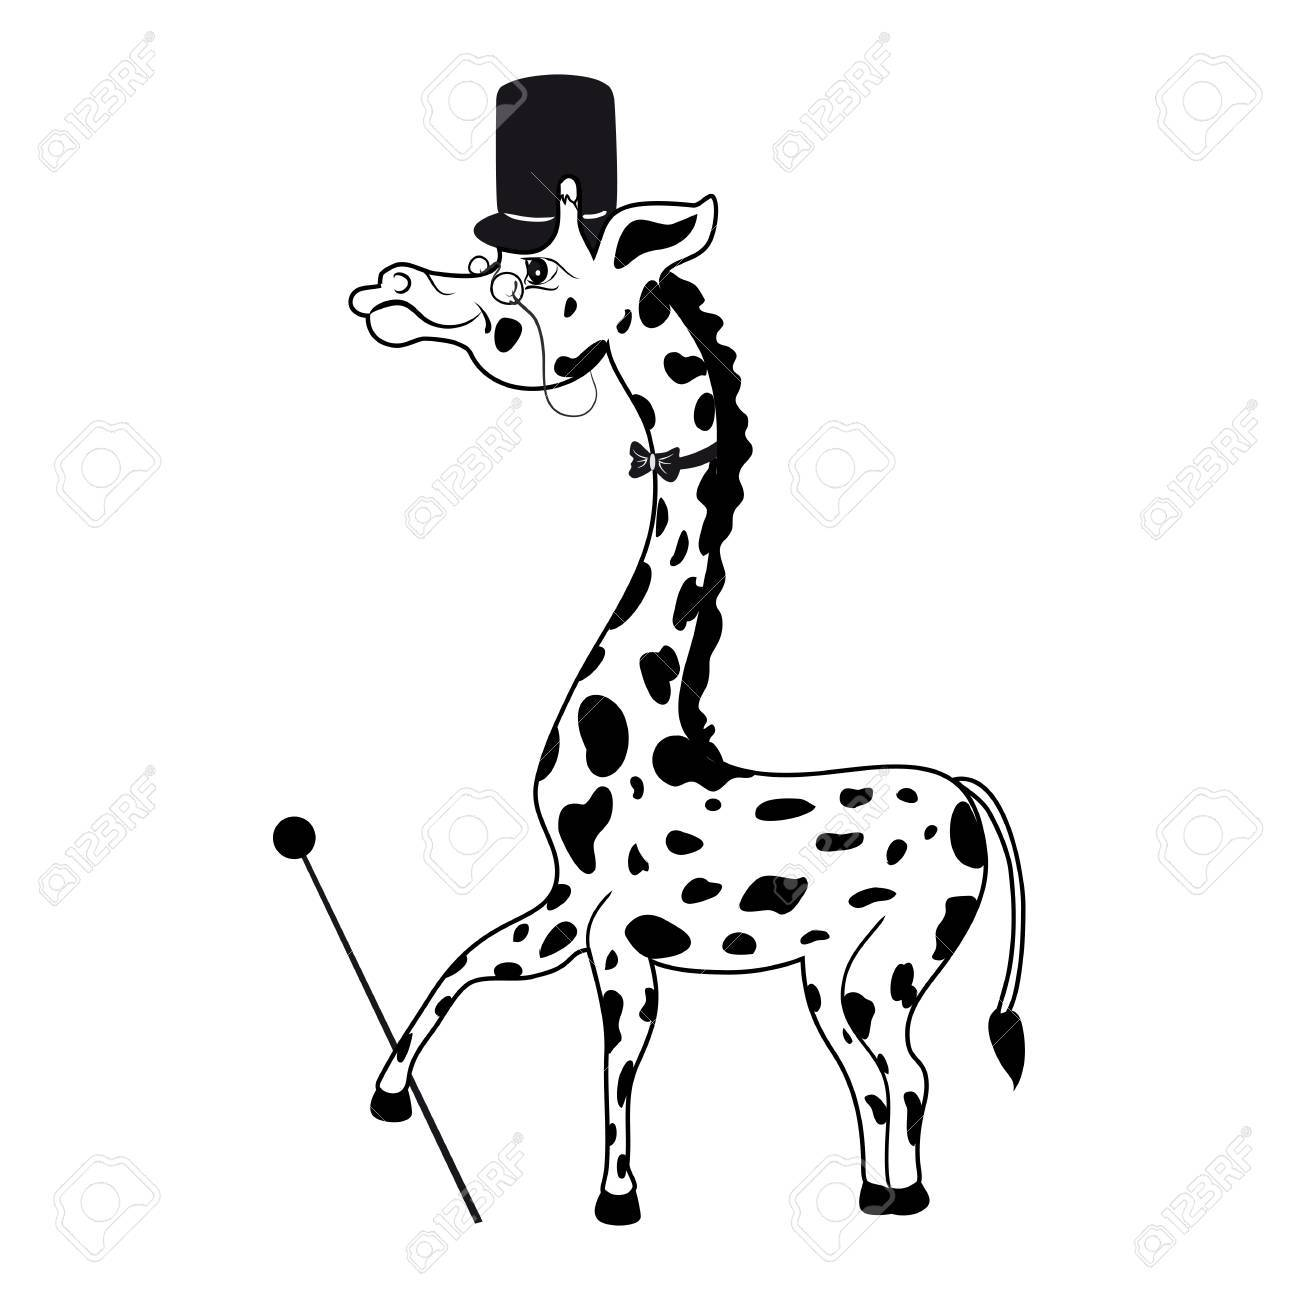 1300x1300 Decorative Cute Funny Count Giraffe With Cylinder, Tie, Cane